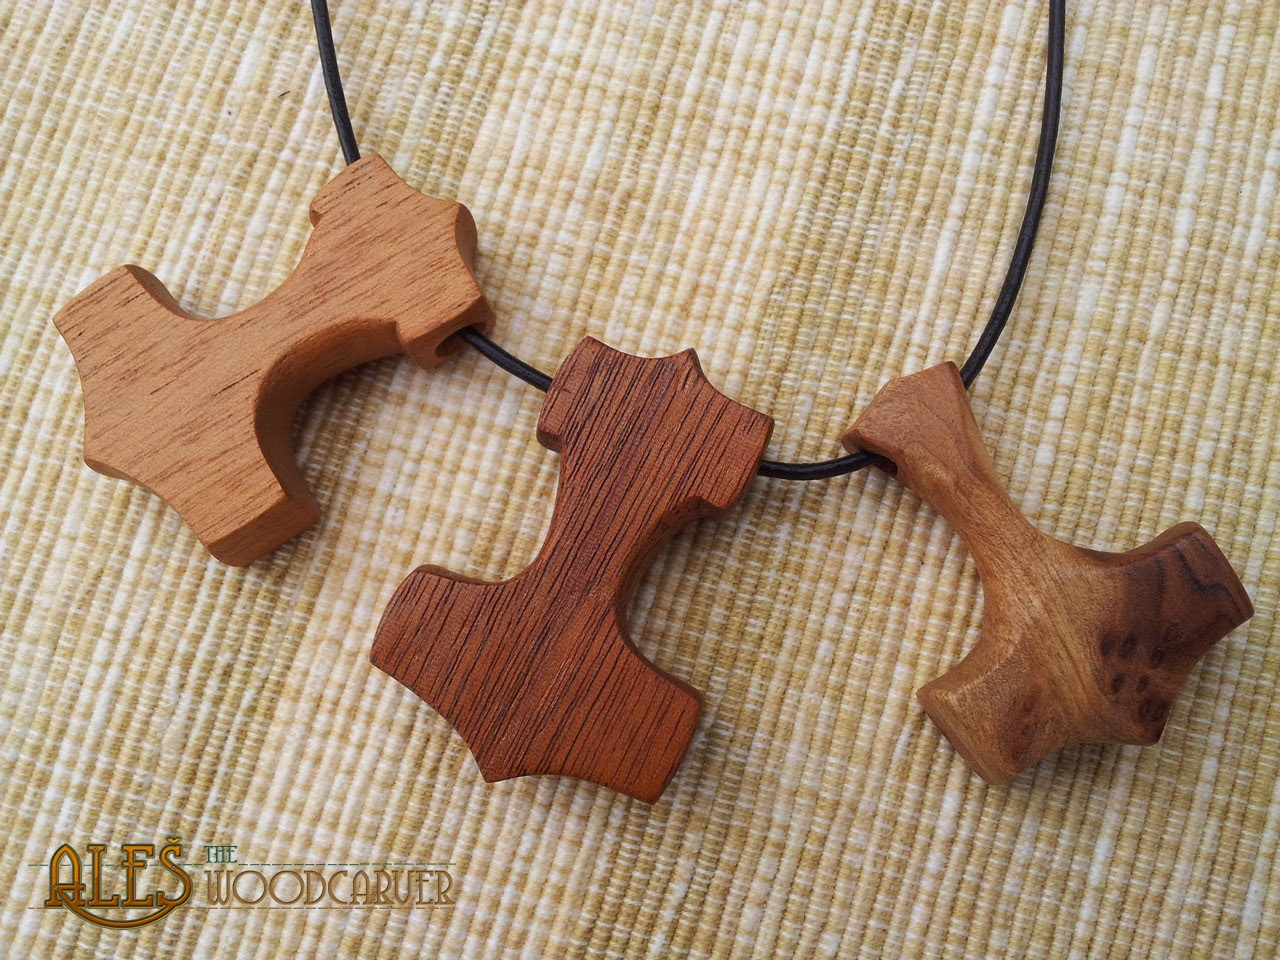 carvings wood walking by weapons on mcconkie dannie ideas bones bone sticks pin pendant necklace jade pinterest maori carving